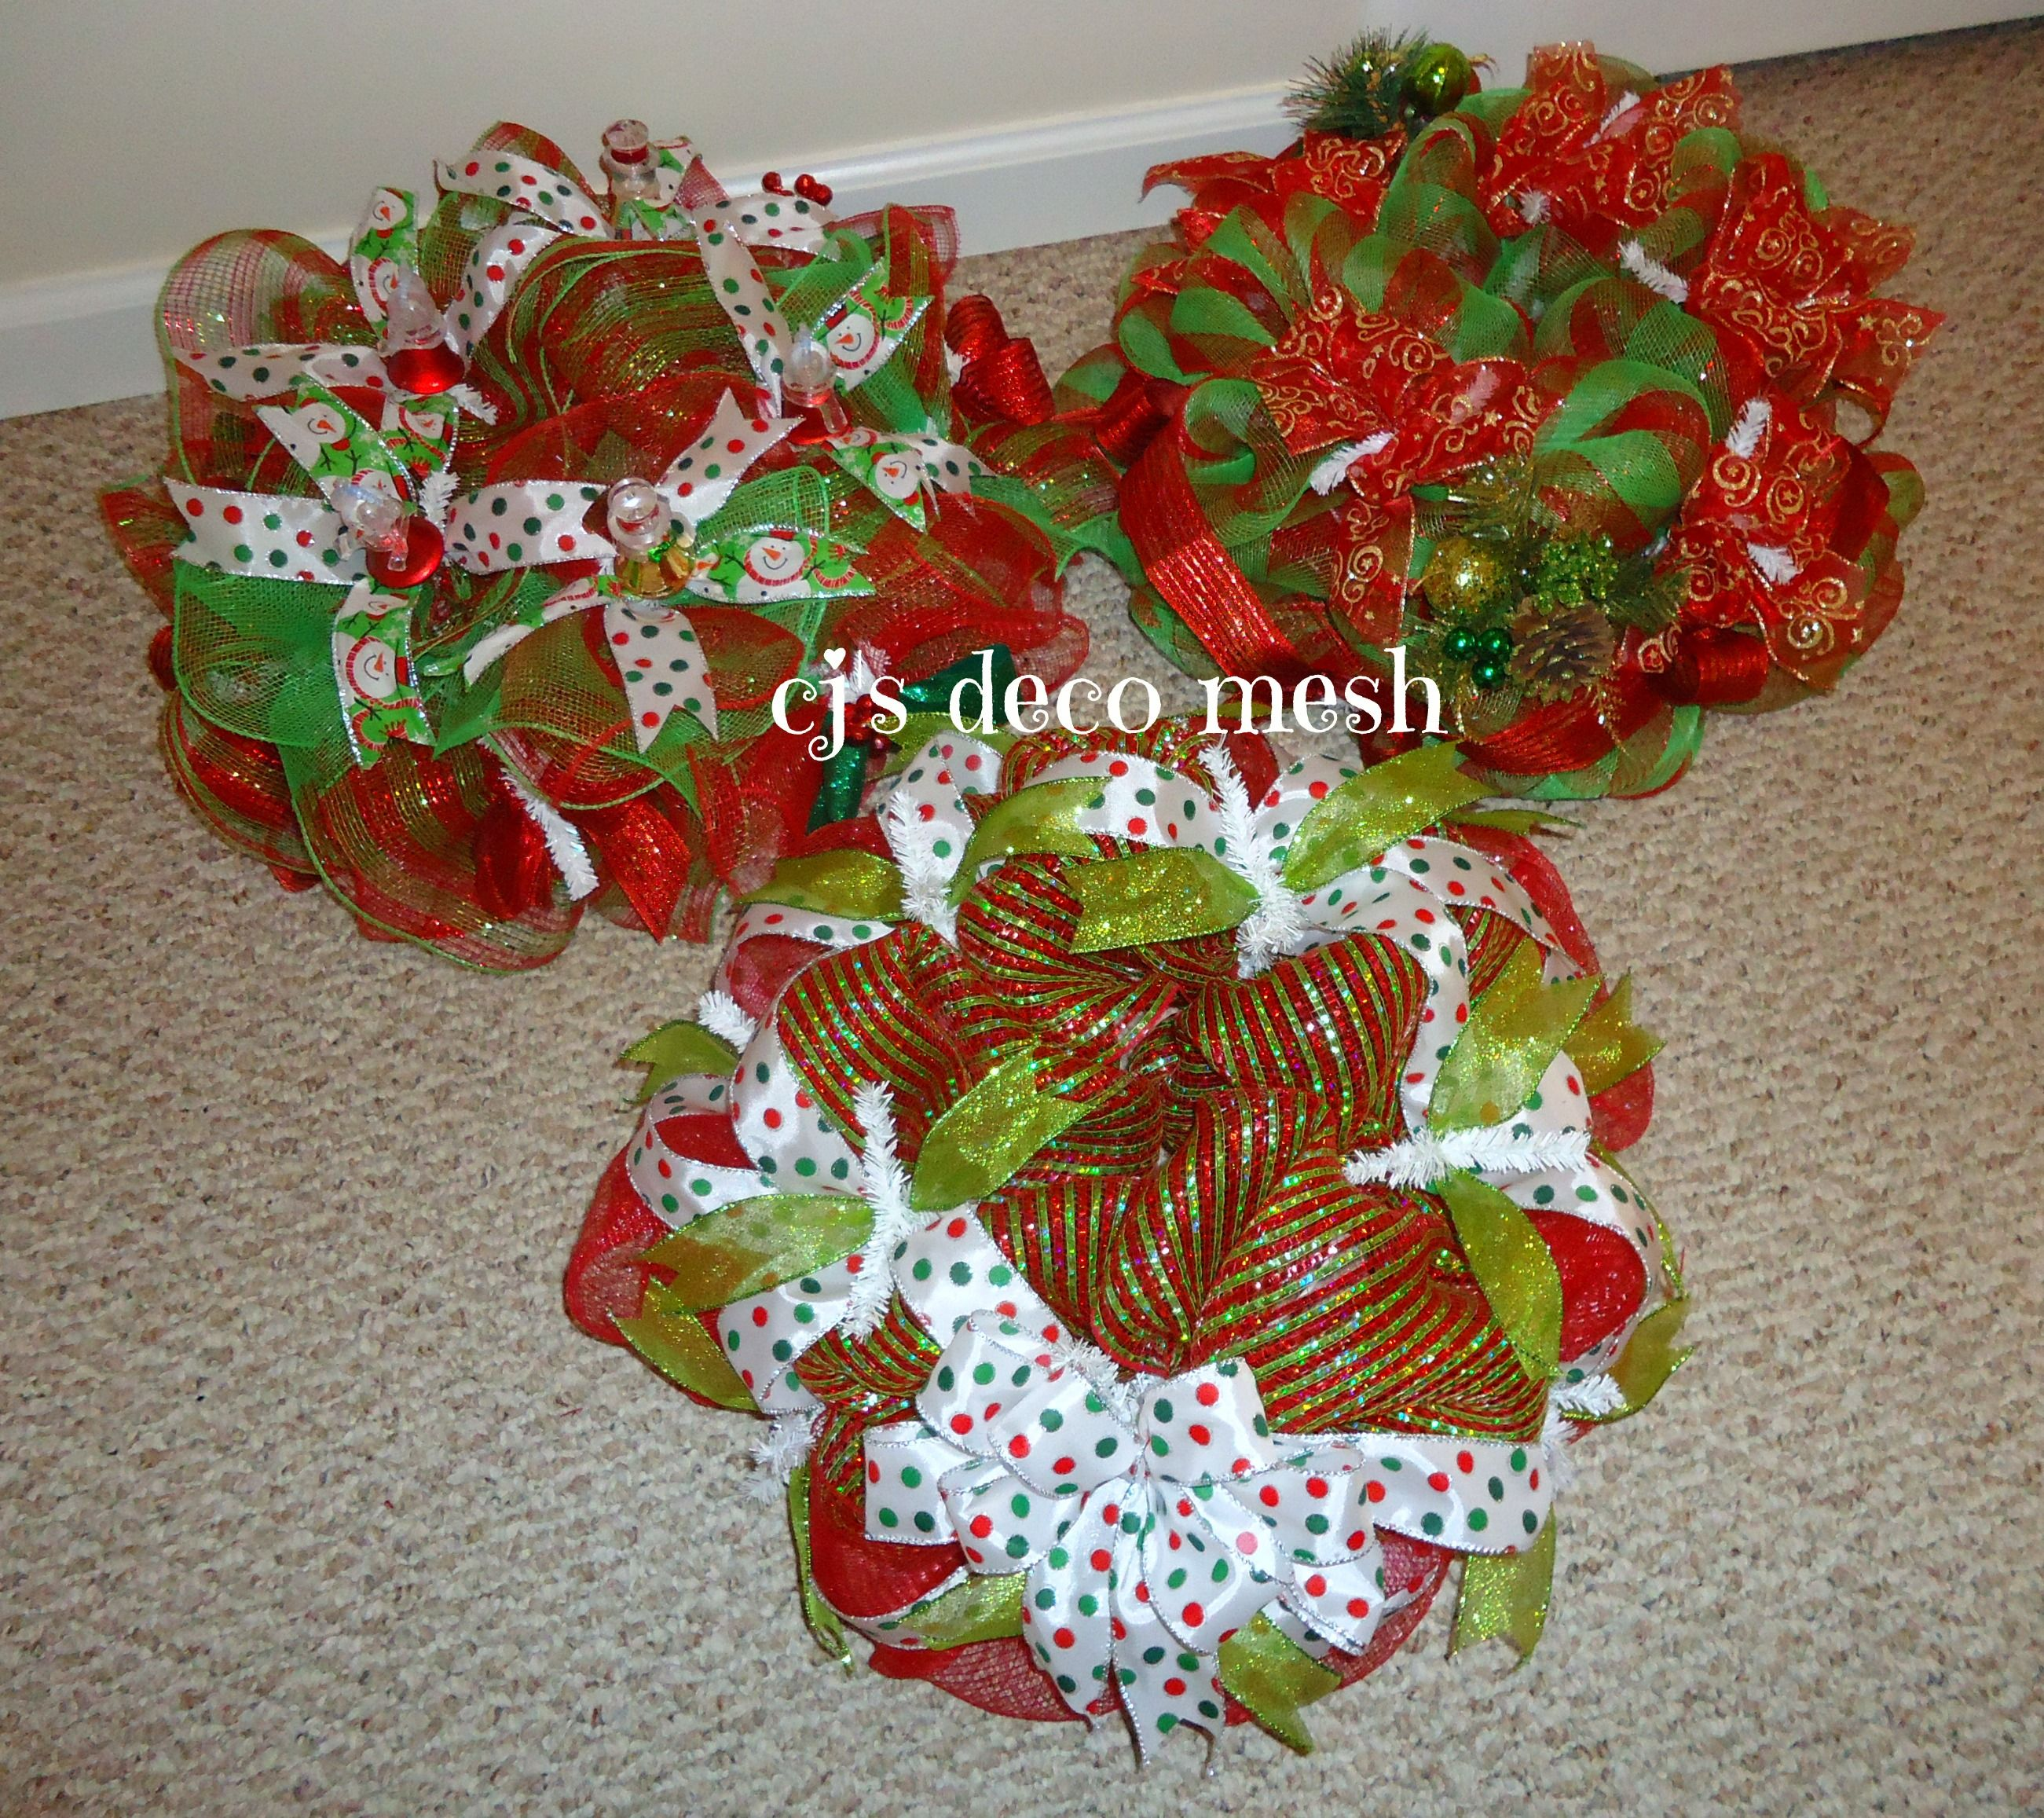 Deco mesh centerpieces all wreaths can be costumed order